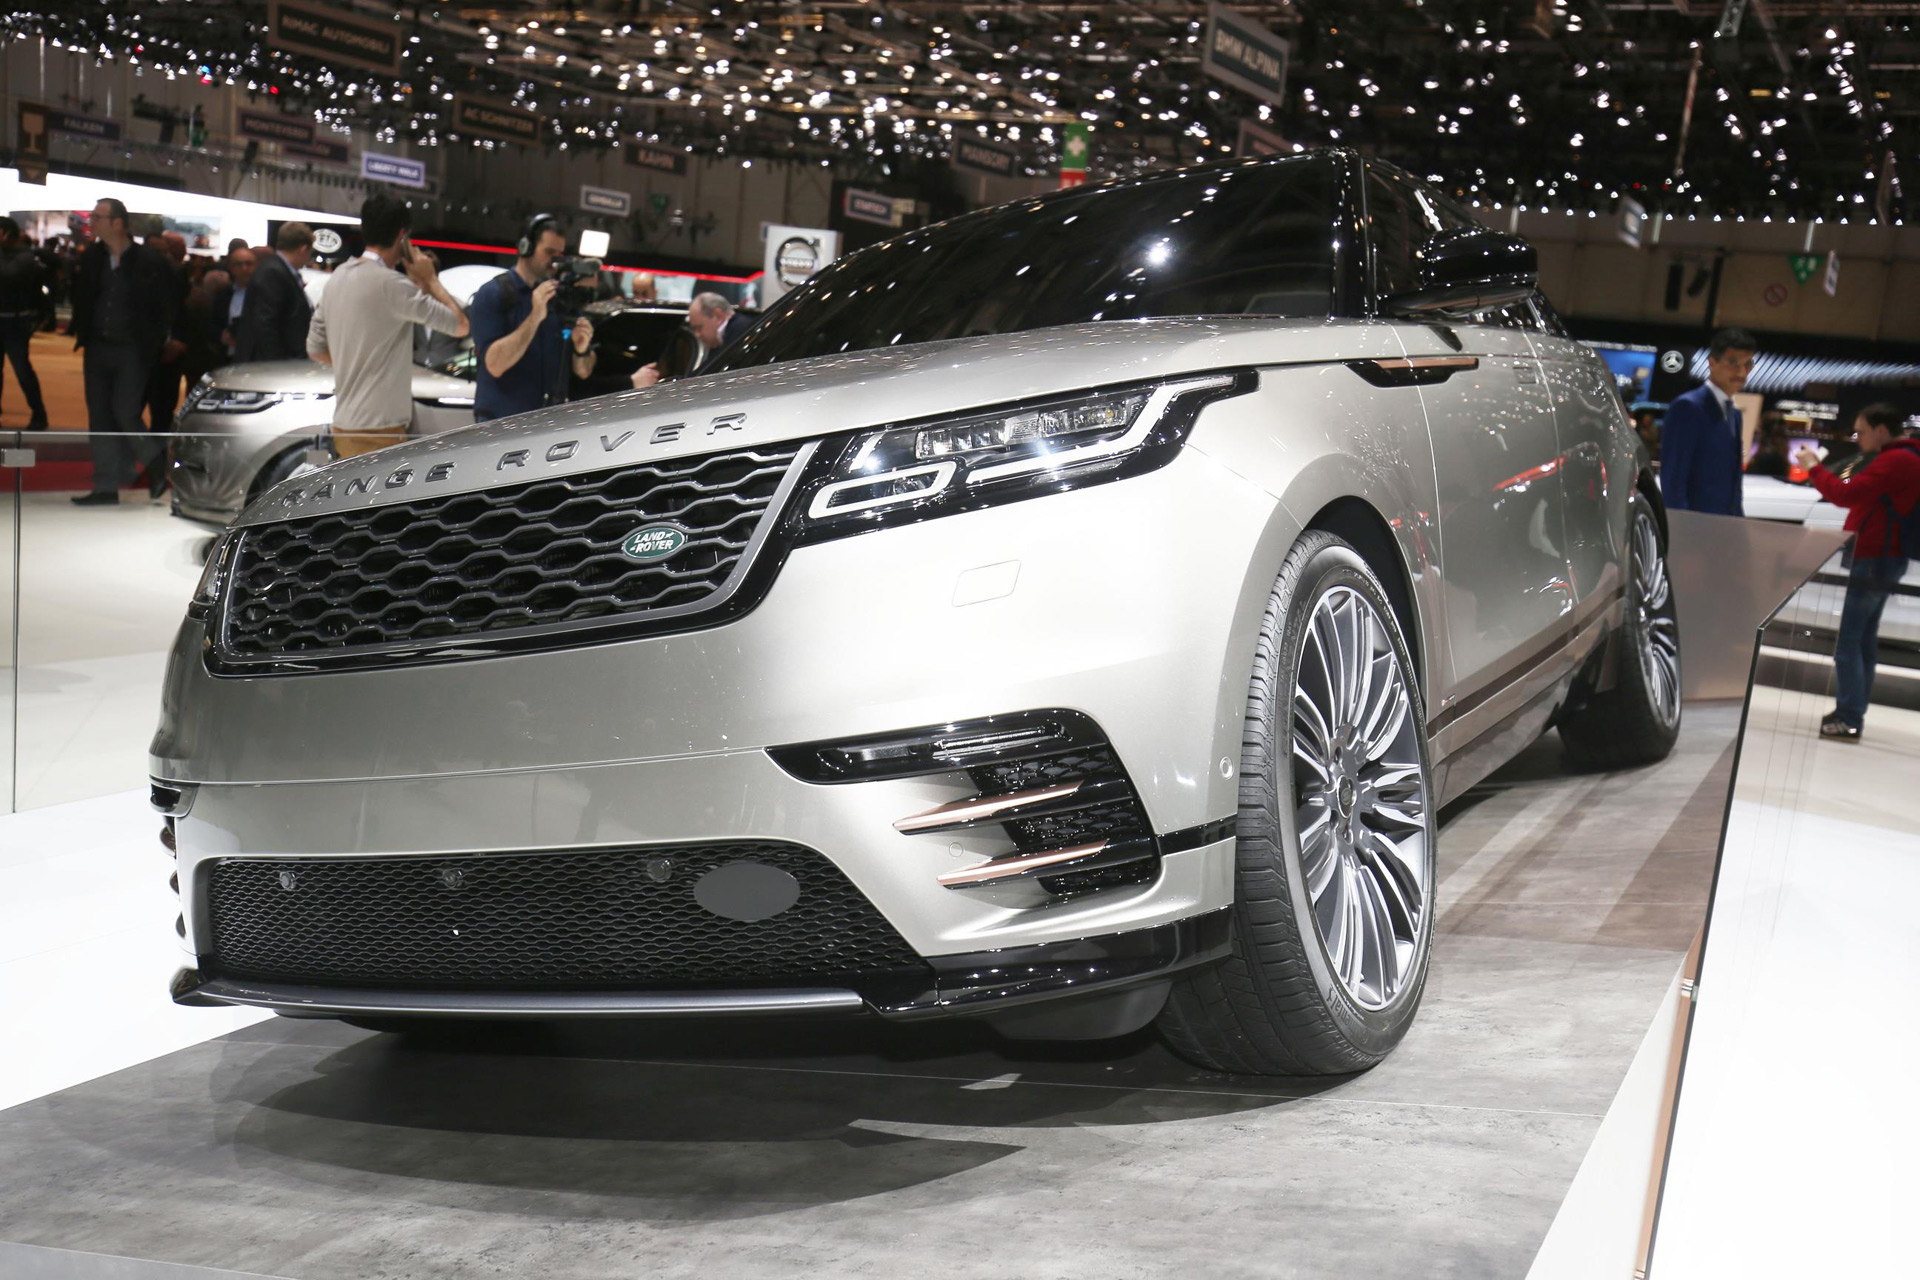 2018 Land Rover Range Rover Velar Revealed Priced From 50 895